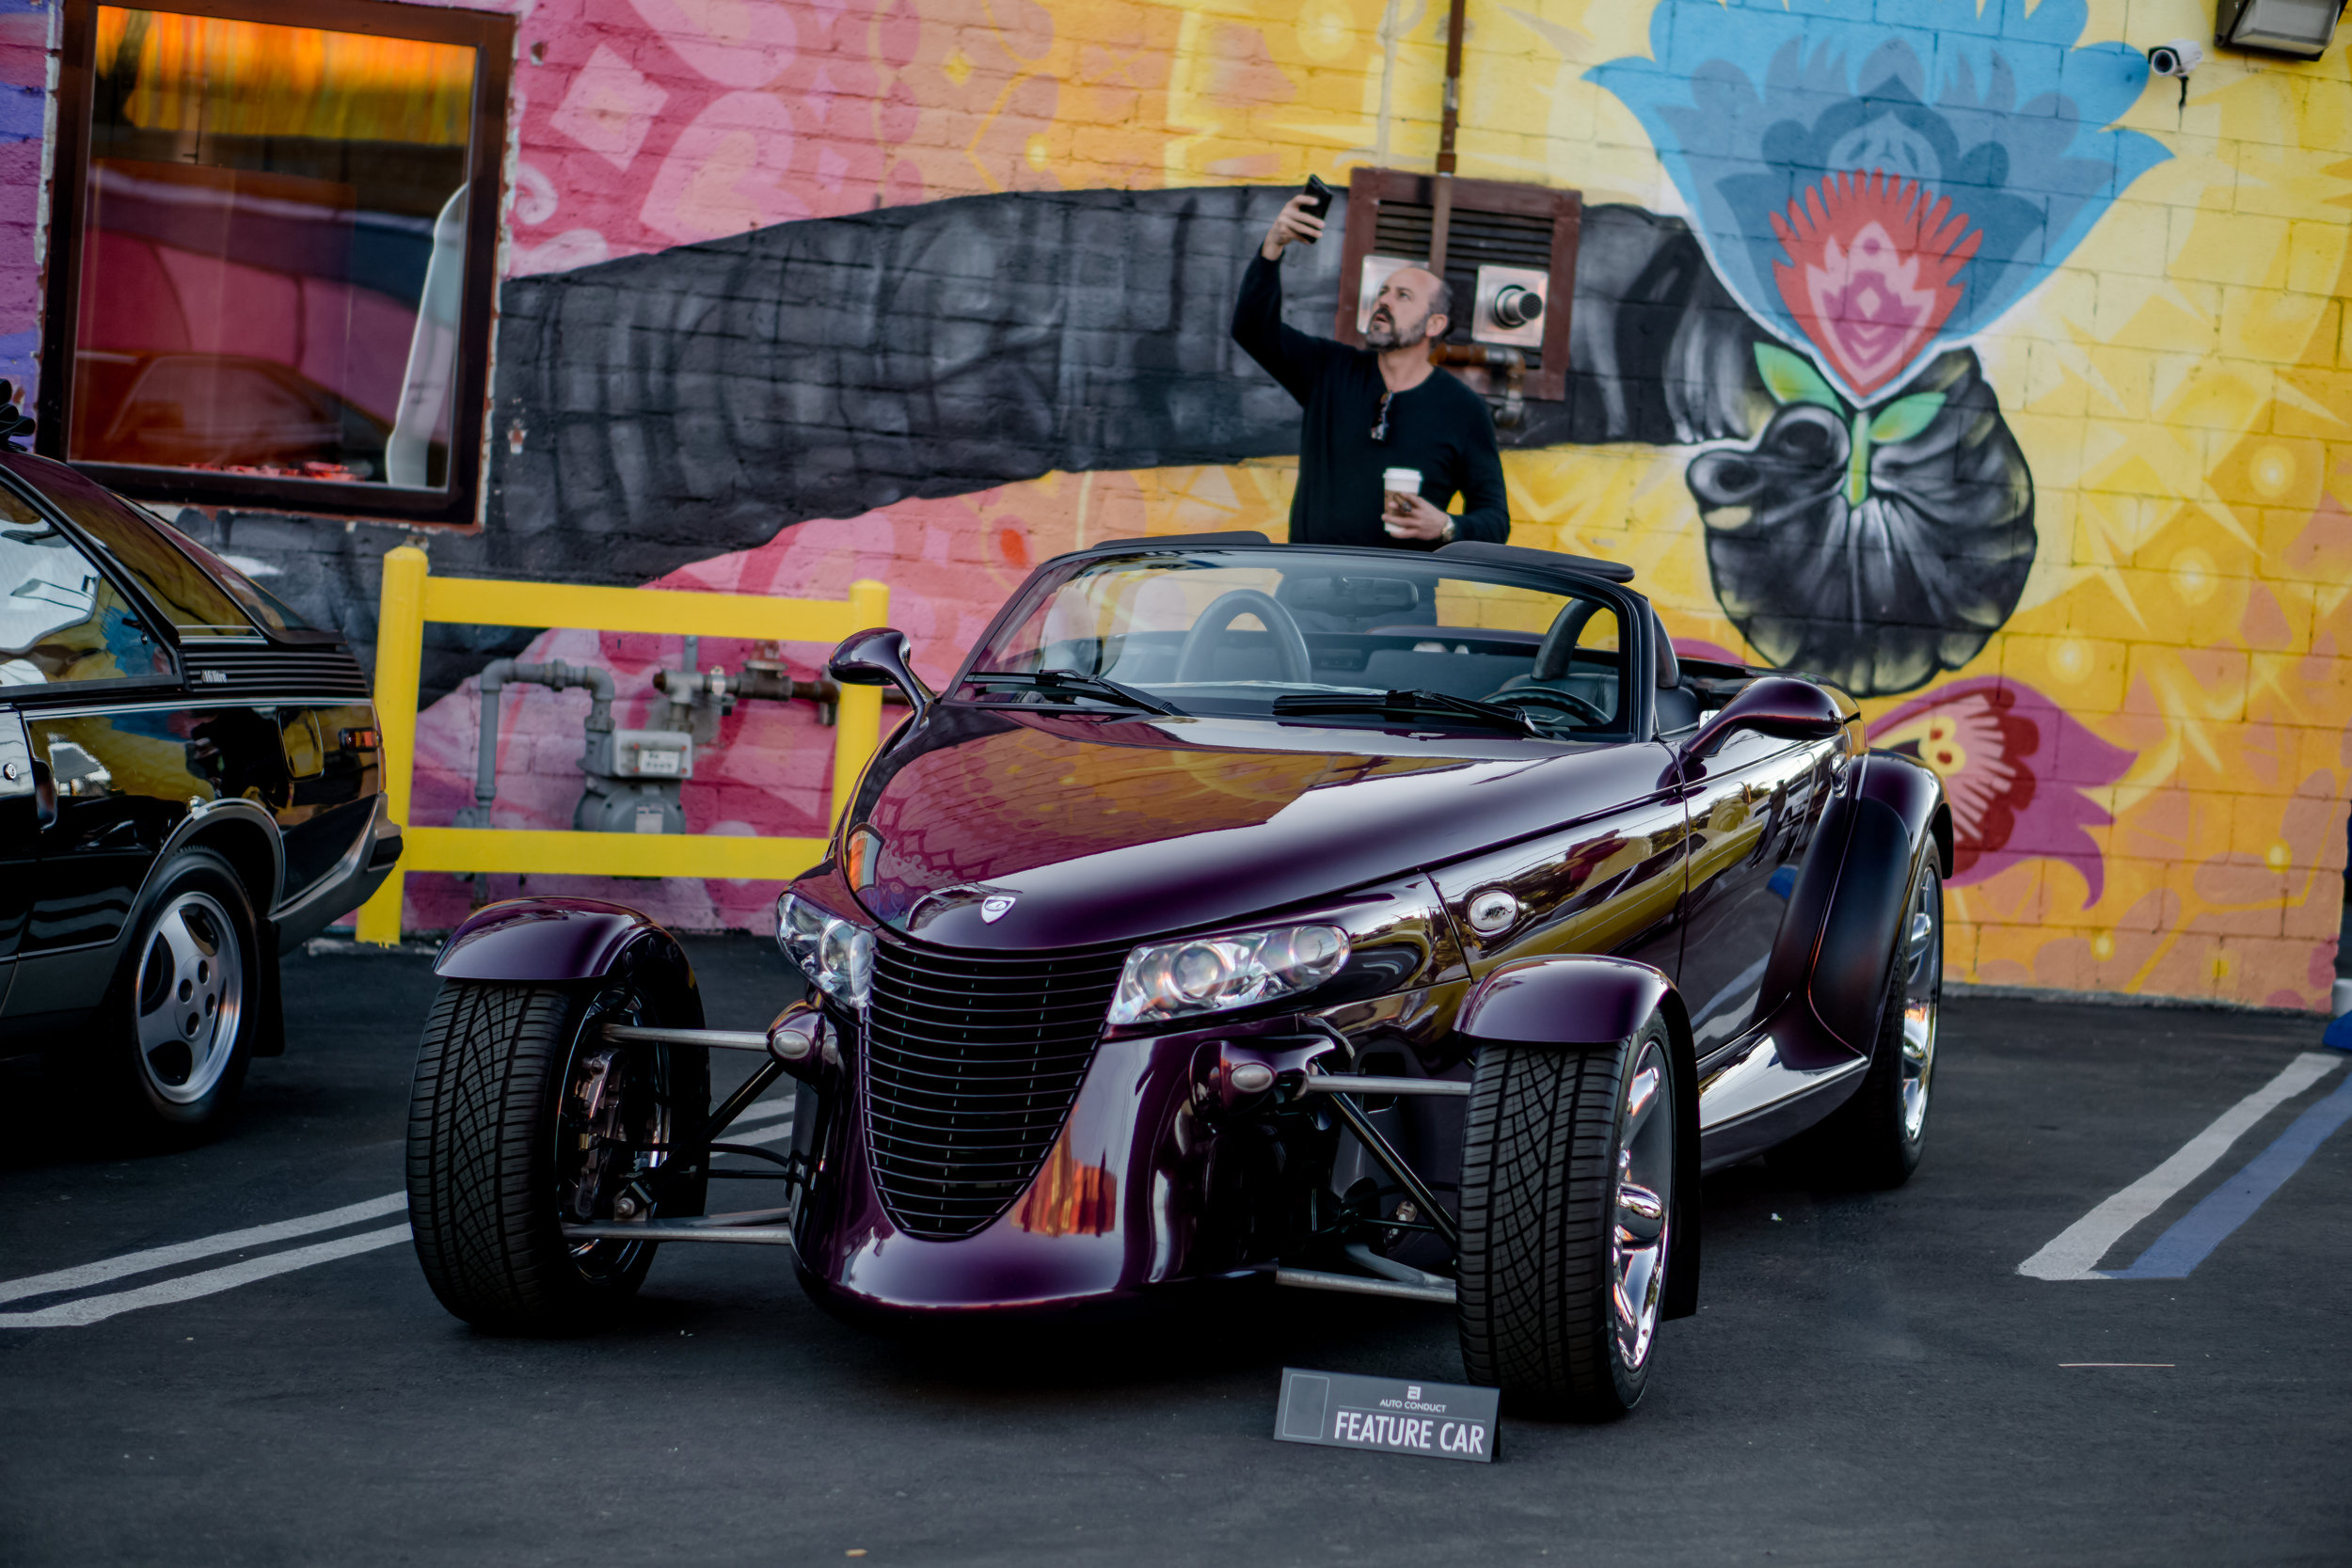 Brian Holt Plymouth Prowler